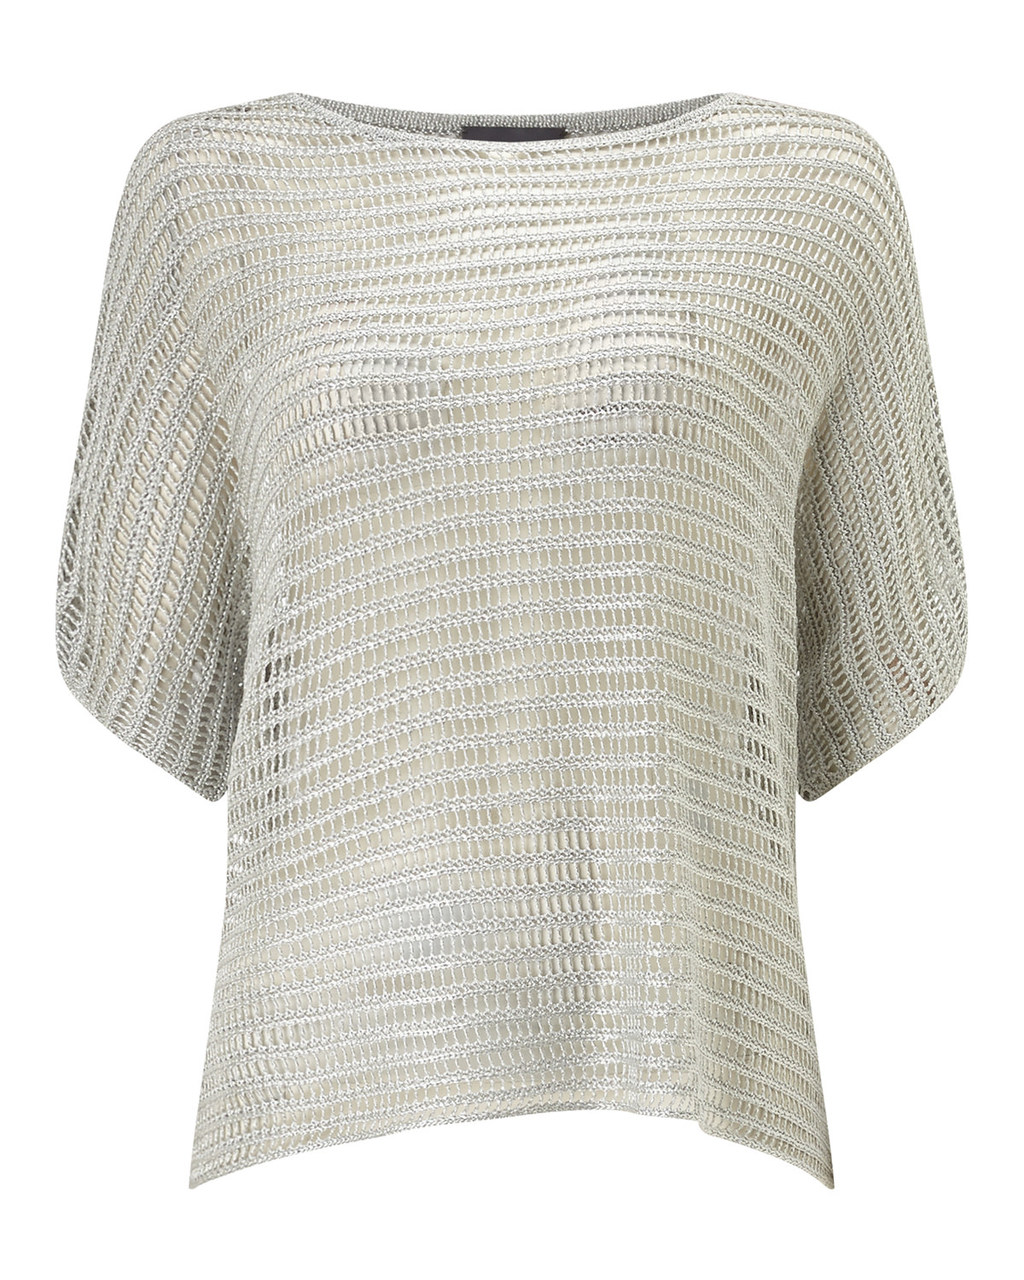 Maura Metallic Knit - neckline: slash/boat neckline; sleeve style: dolman/batwing; pattern: plain; style: standard; predominant colour: gold; occasions: casual, creative work; length: standard; fibres: viscose/rayon - stretch; fit: loose; sleeve length: short sleeve; texture group: knits/crochet; pattern type: knitted - fine stitch; season: s/s 2016